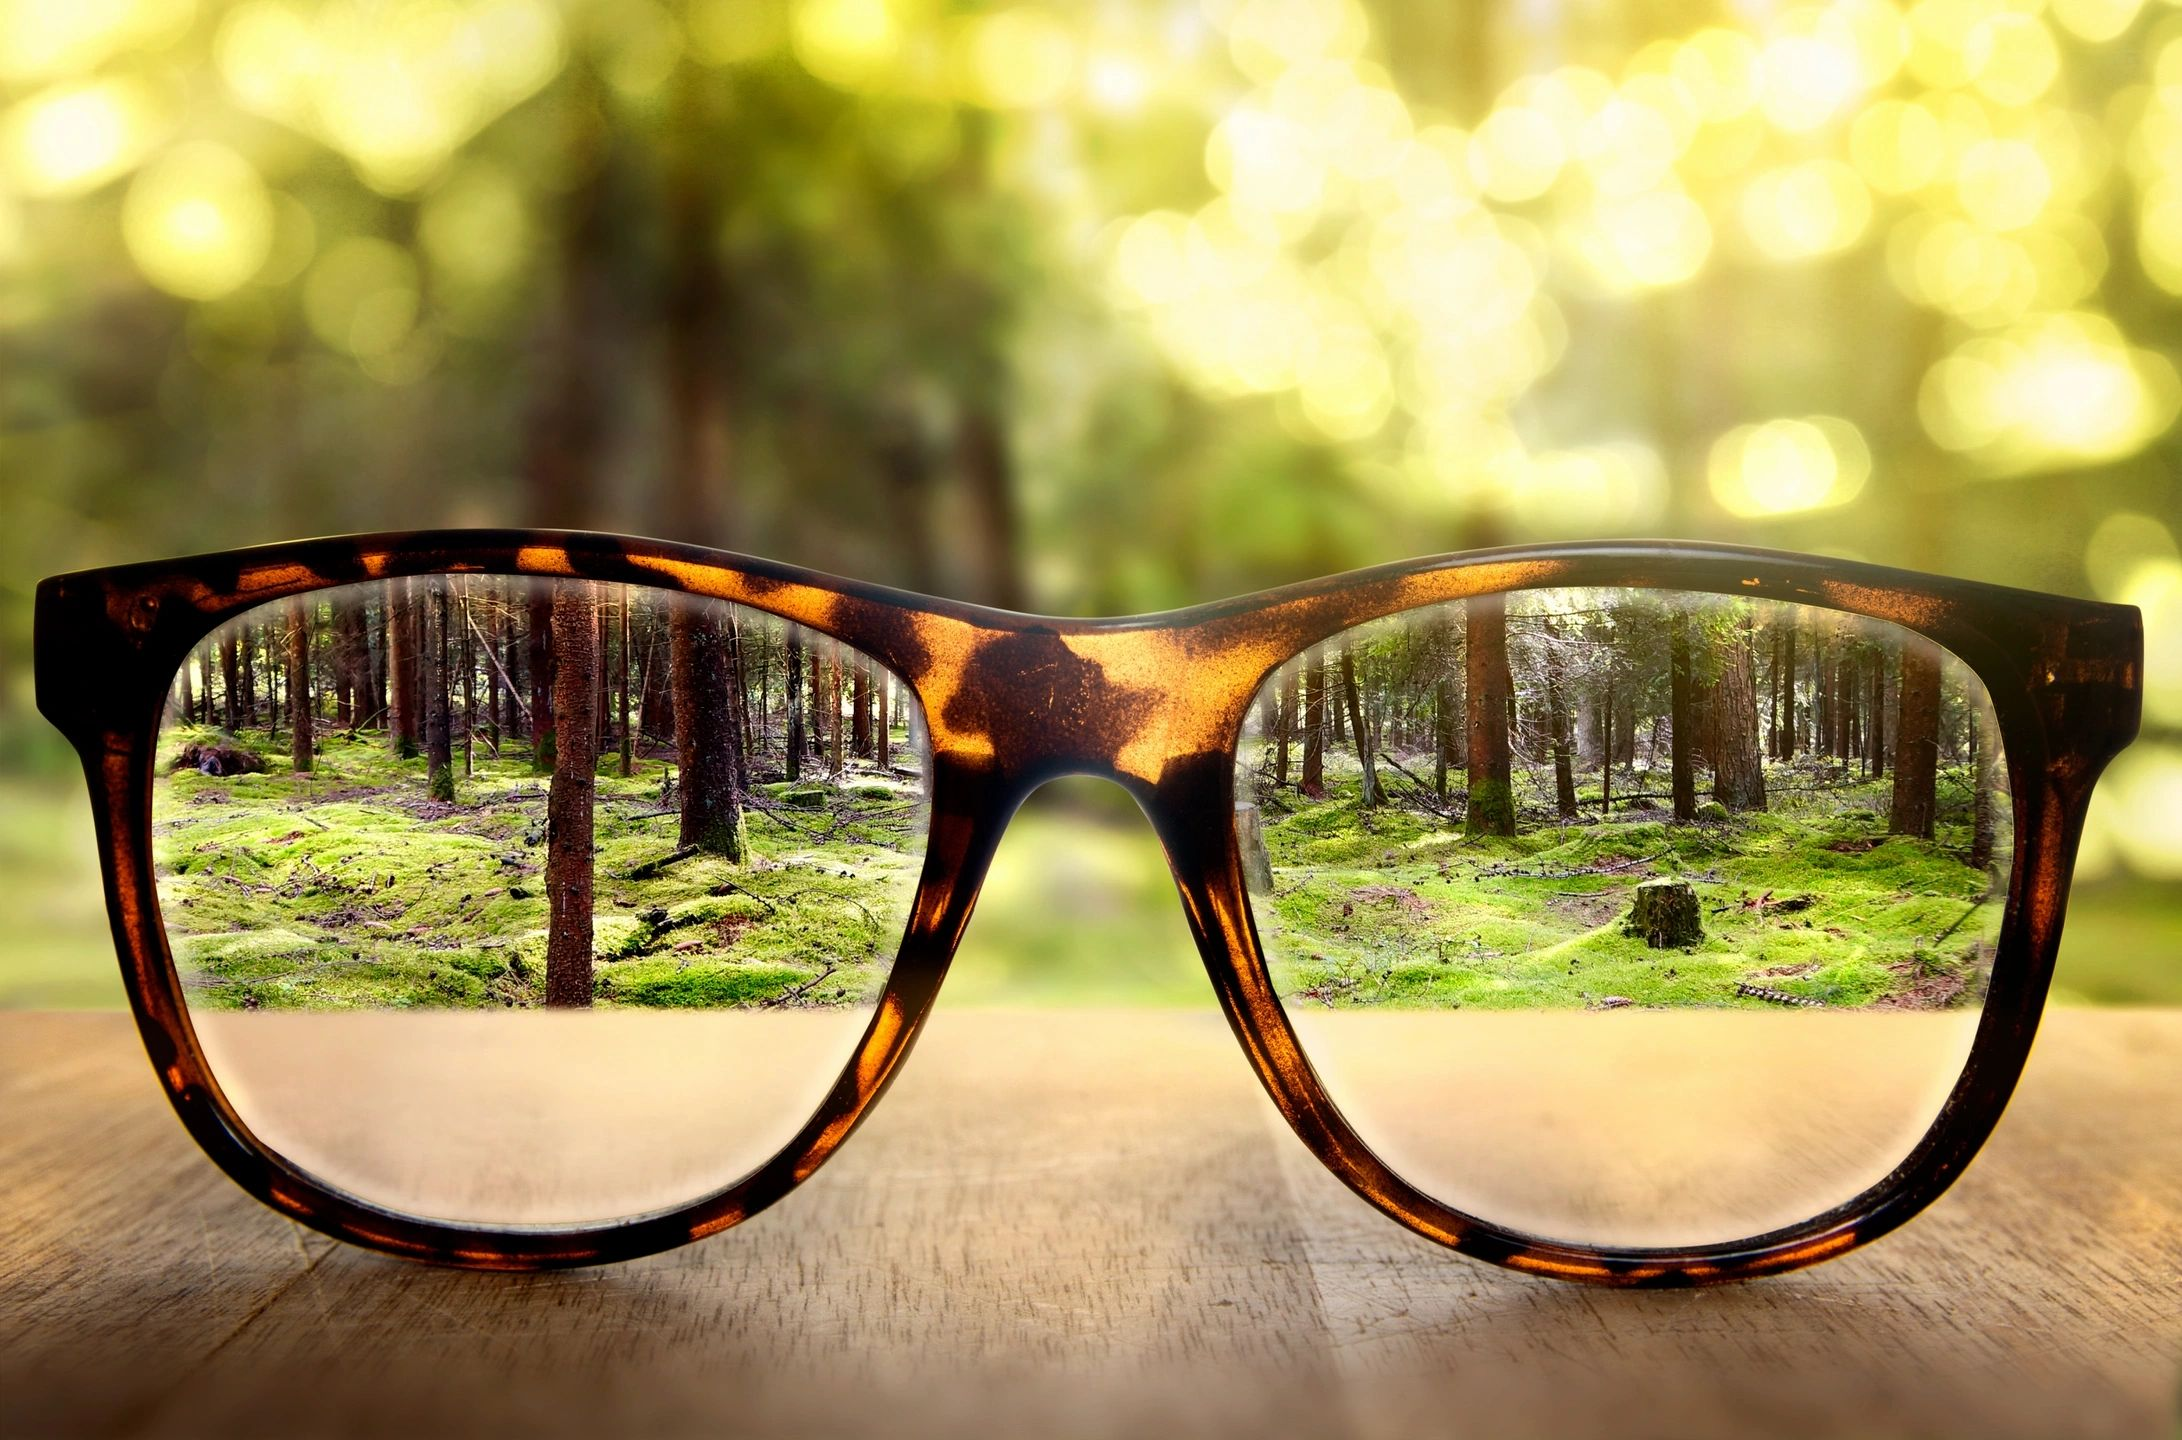 Glasses looking into the woods